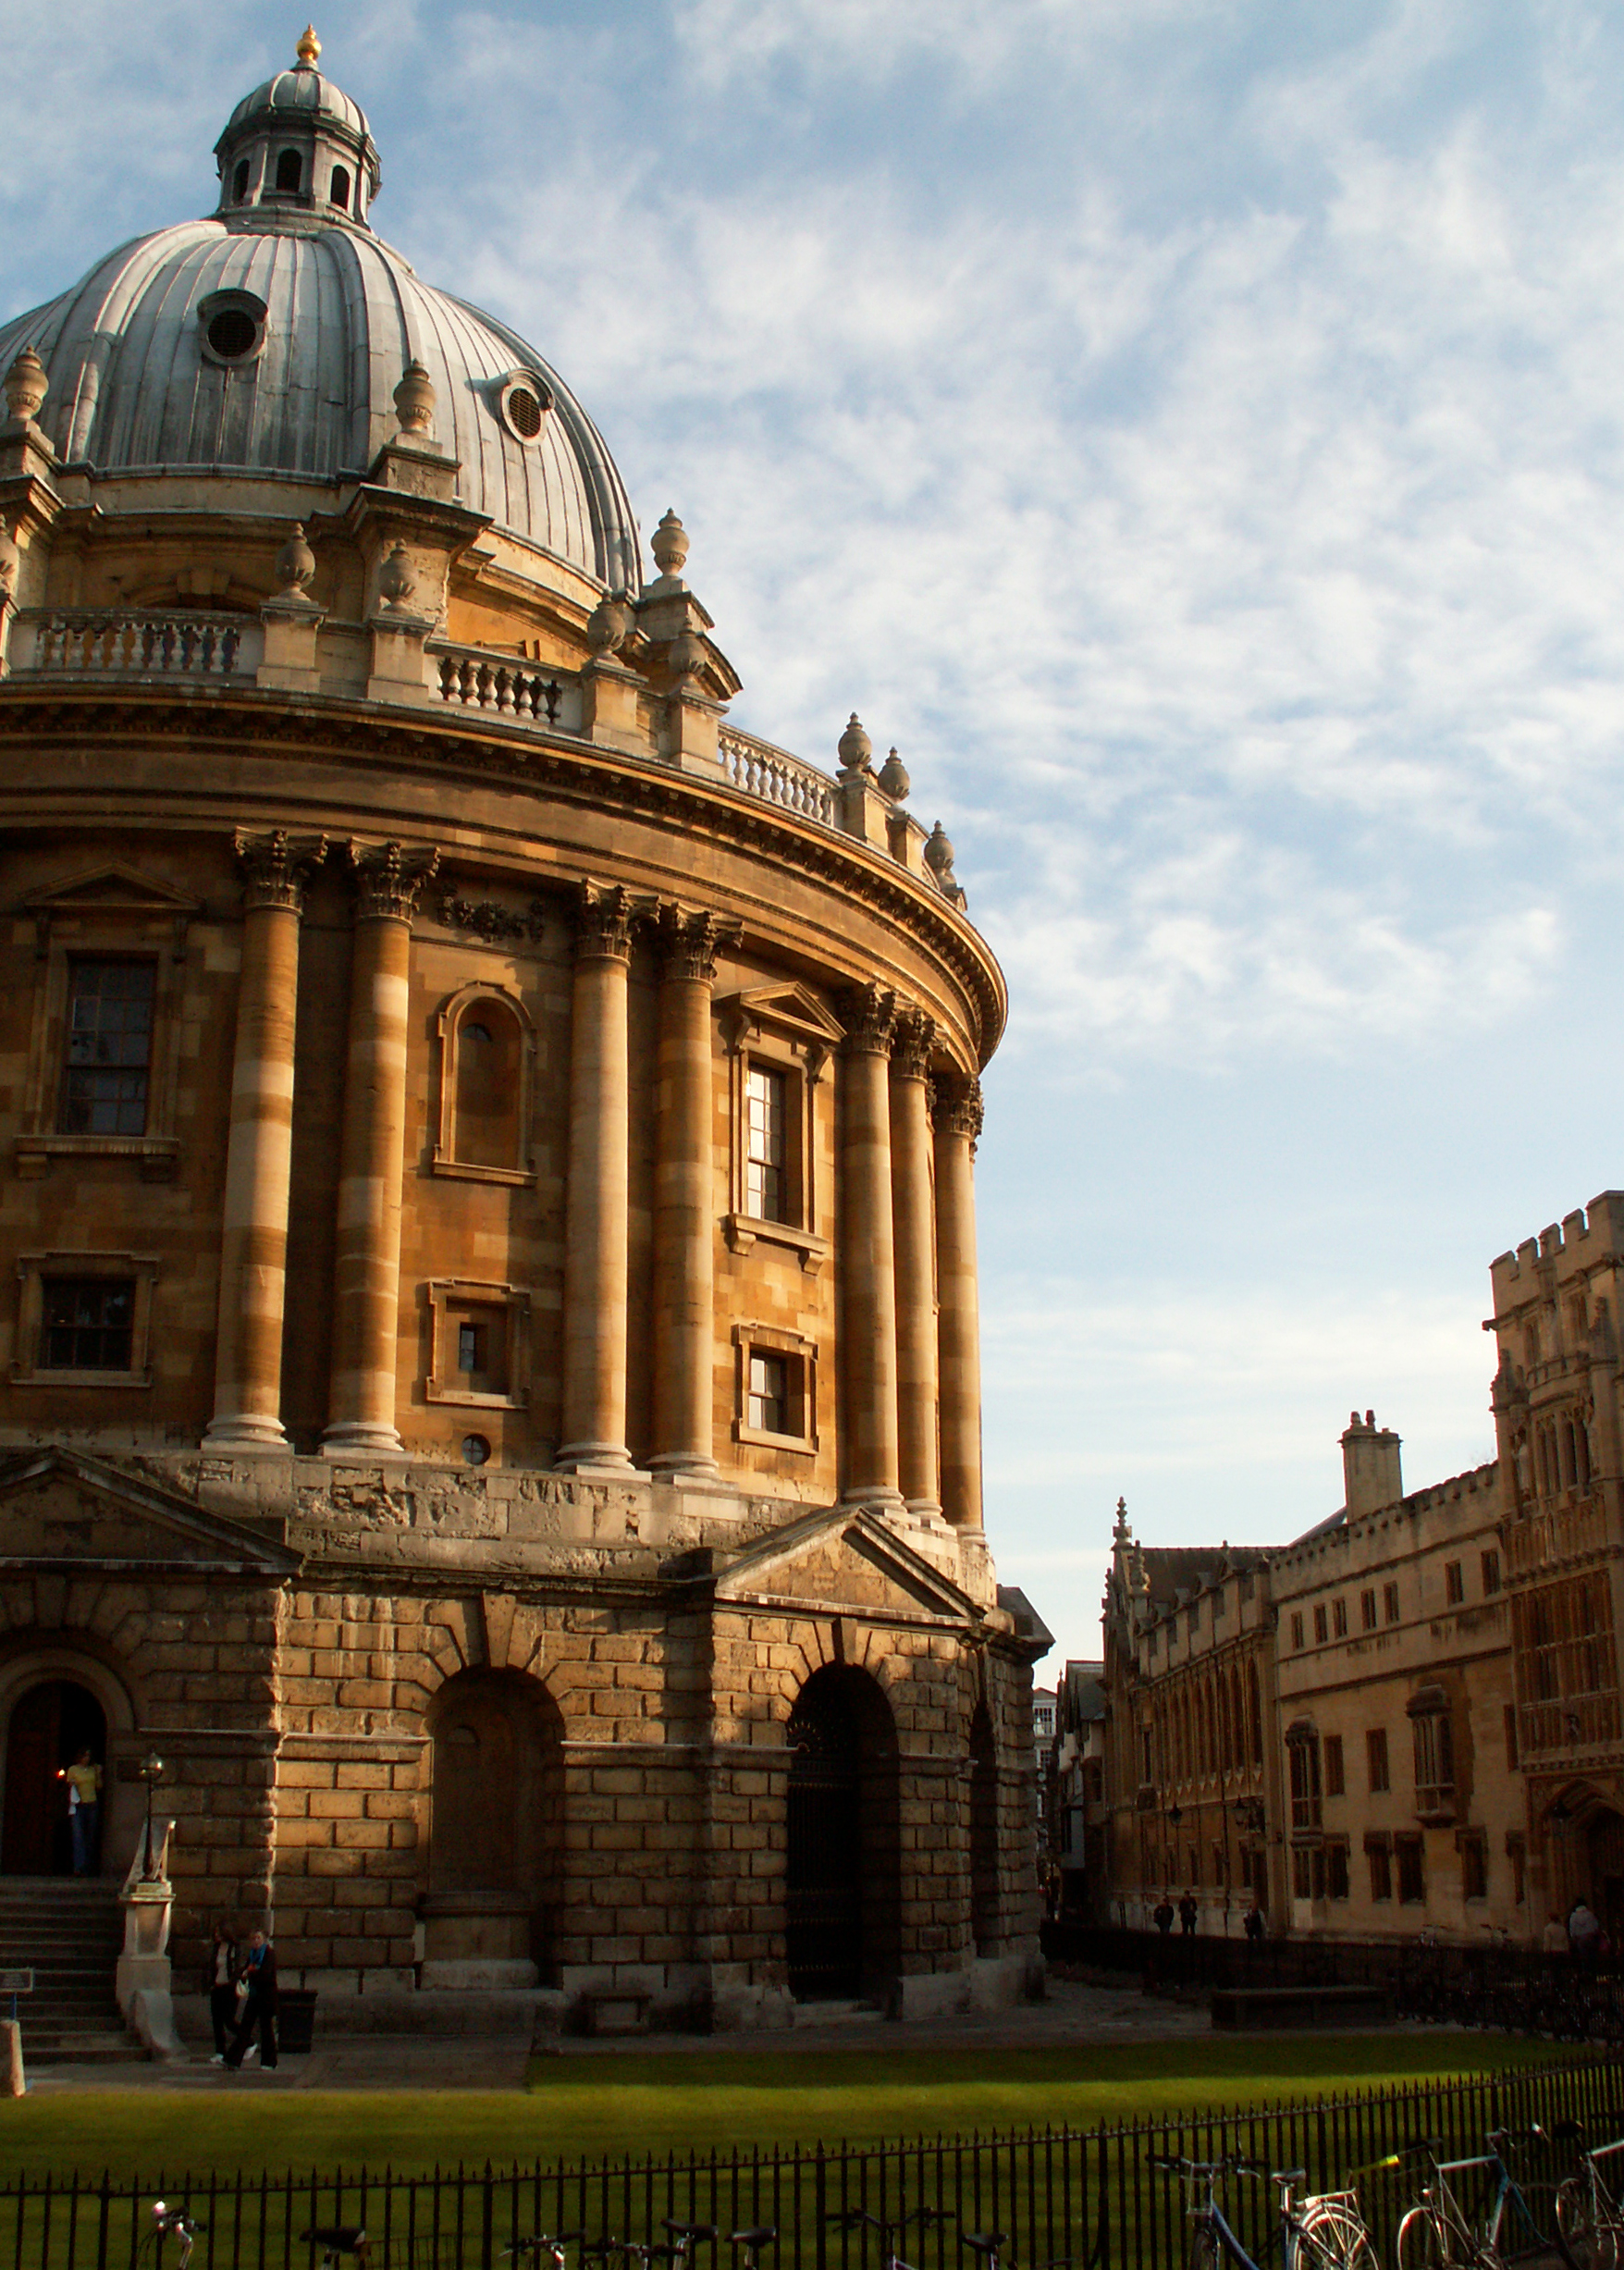 It's not me that's inadequate: it's Oxford University